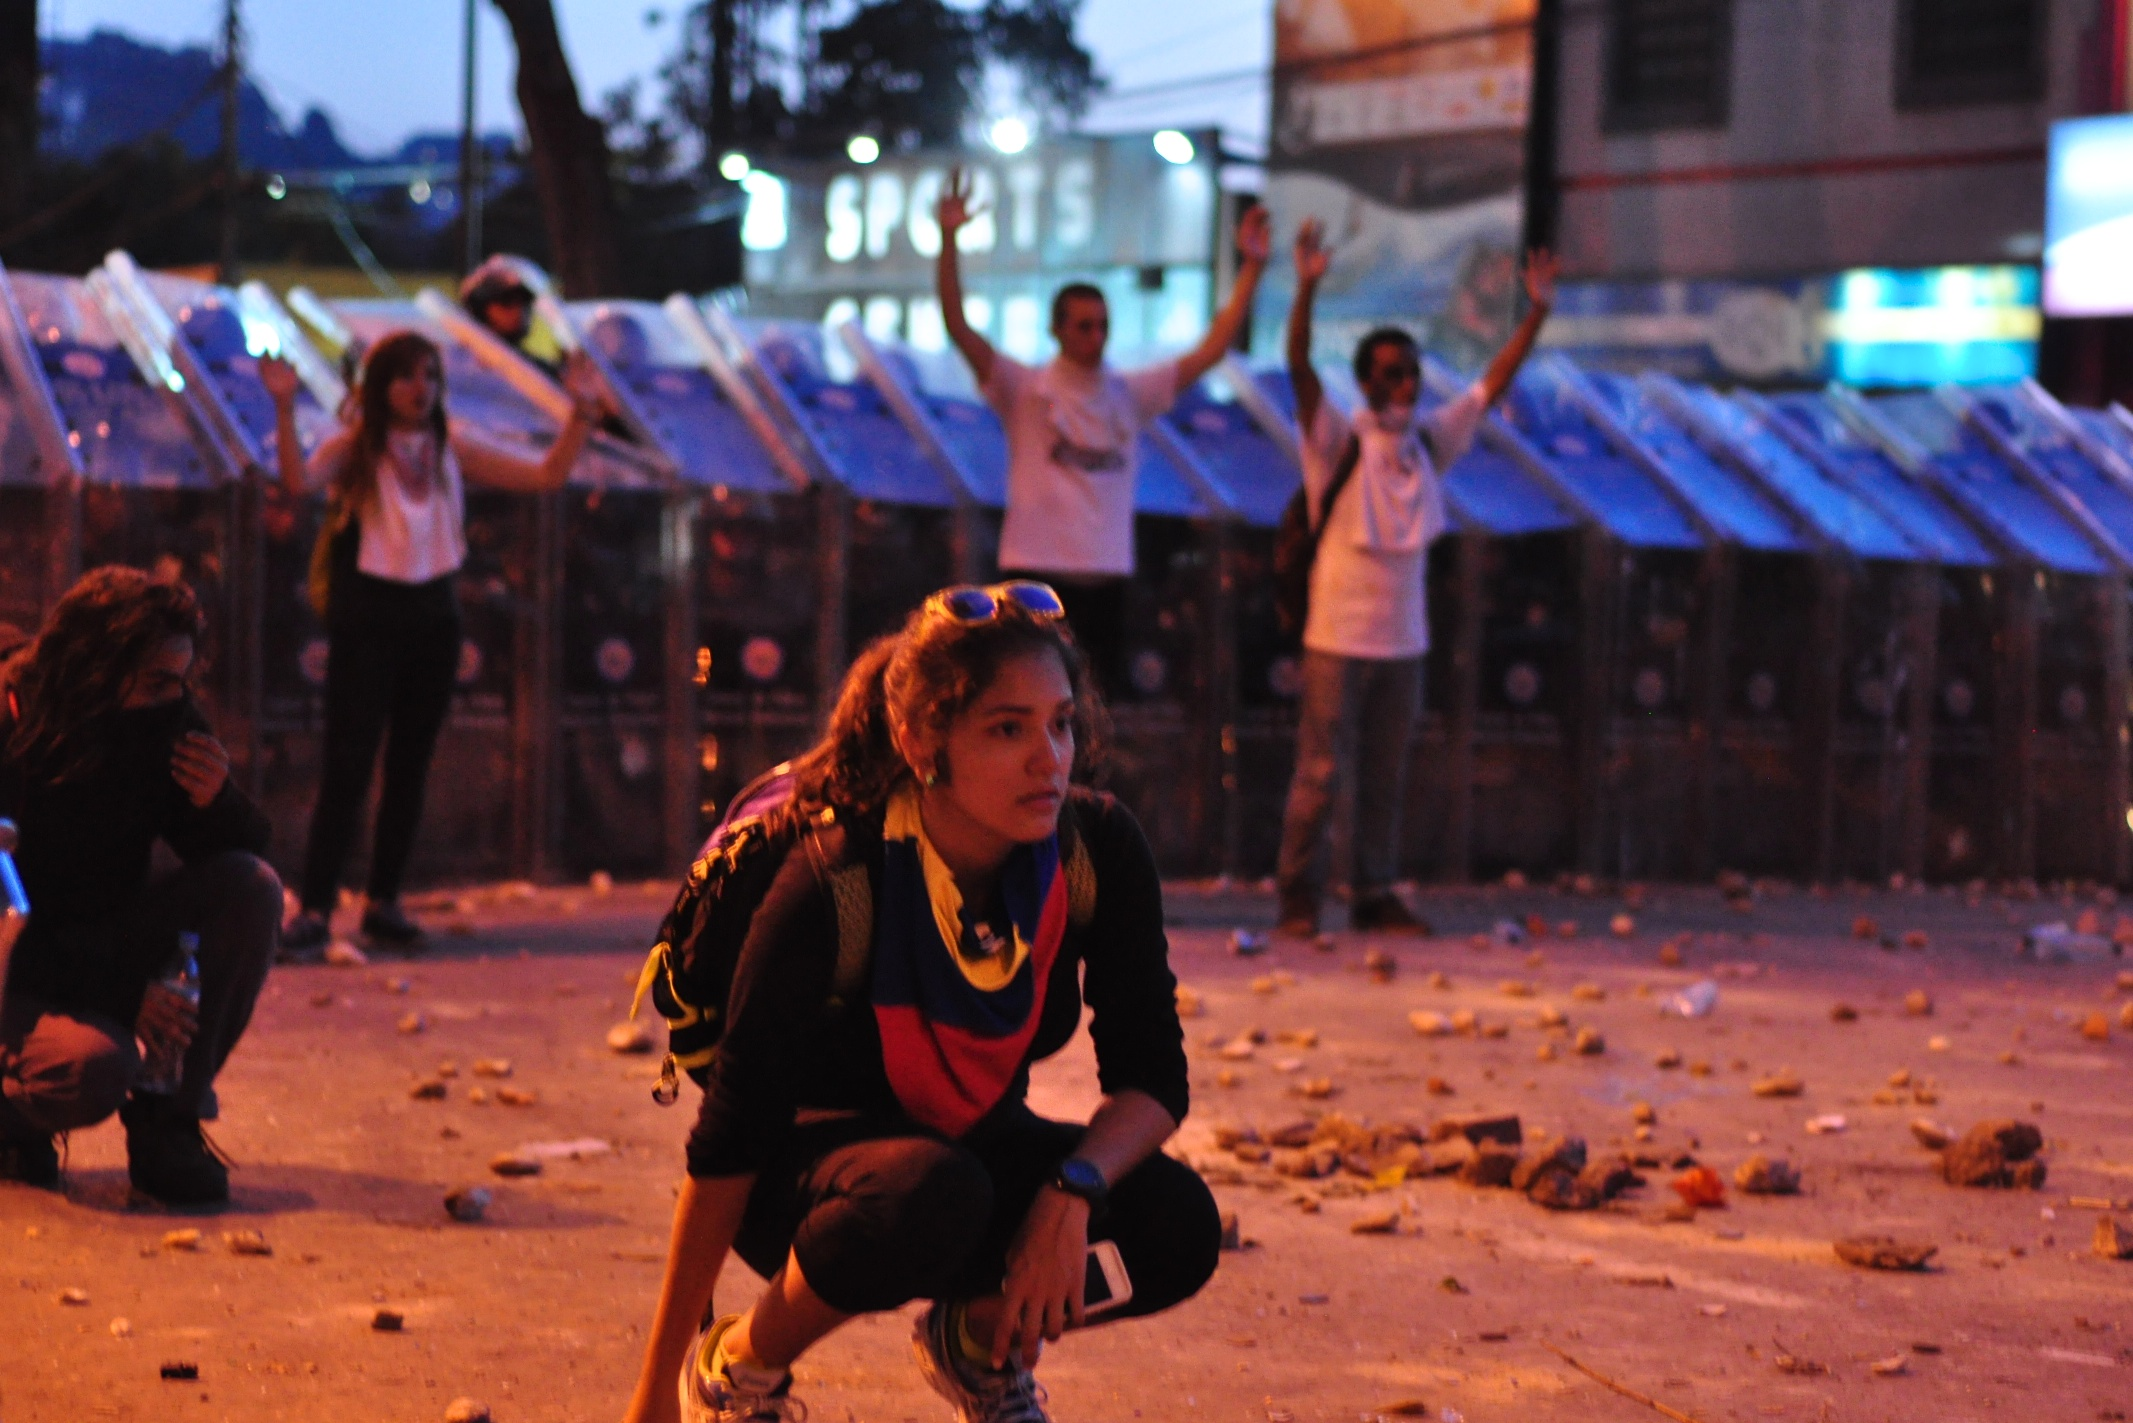 Protesters in Caracas, Venezuela. From flickr account andreasAzp.